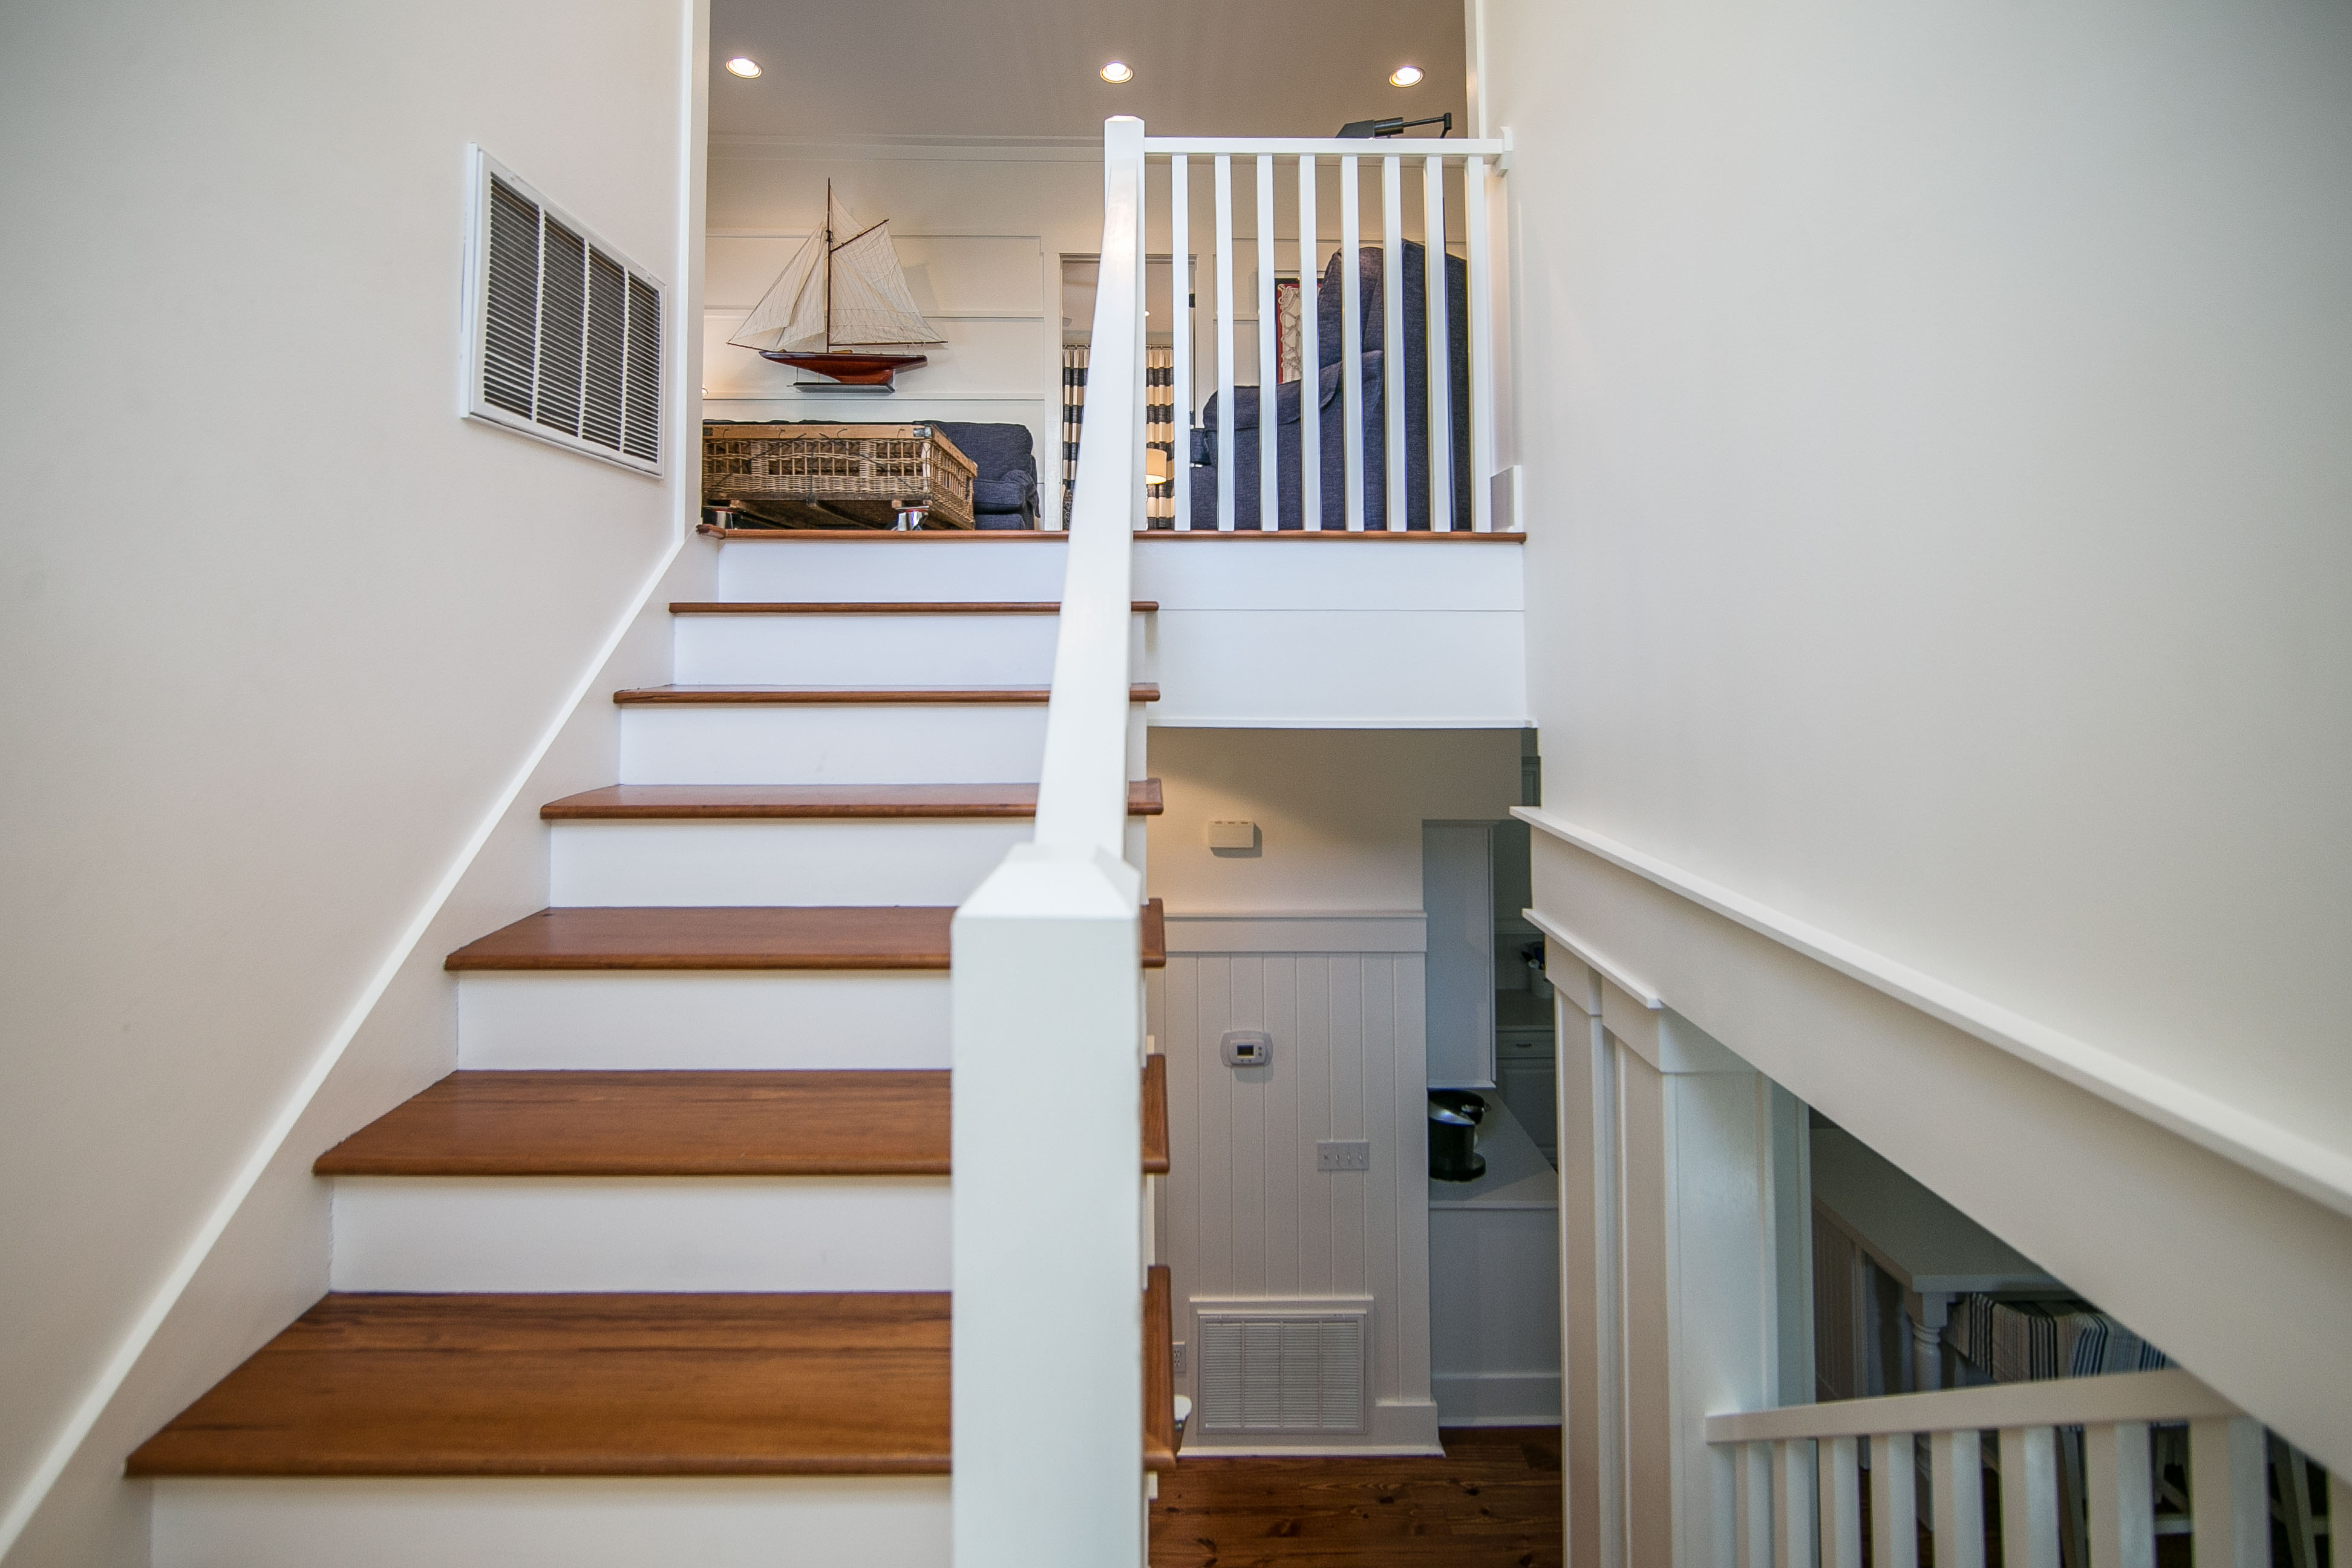 Stairway to the 2nd floor